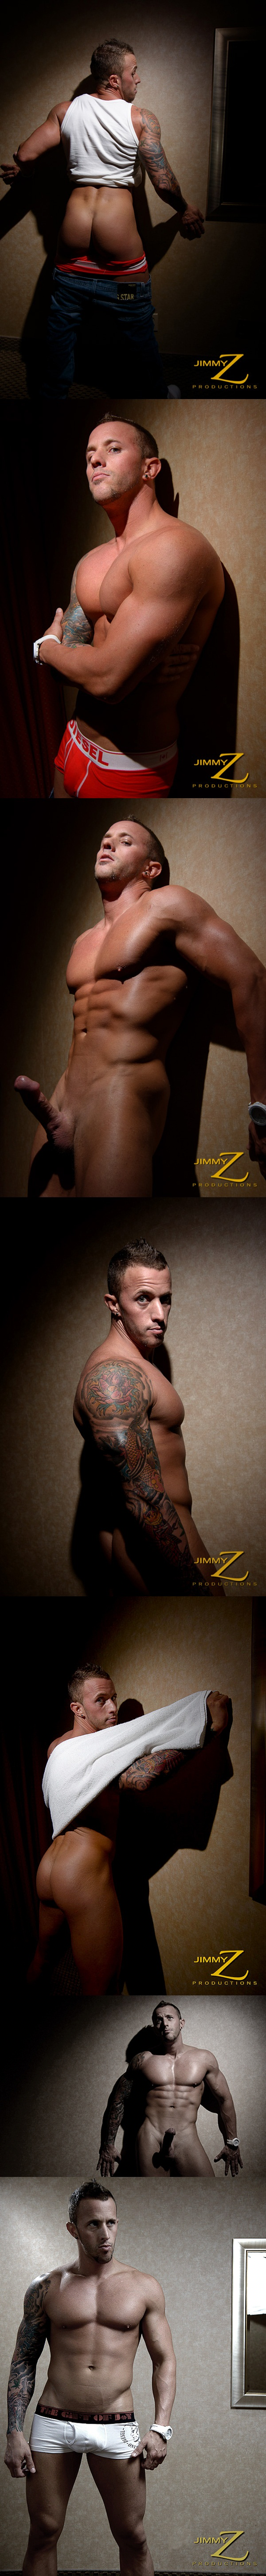 Jeremy Gosling poses and shoots at Jimmyzproductions 02